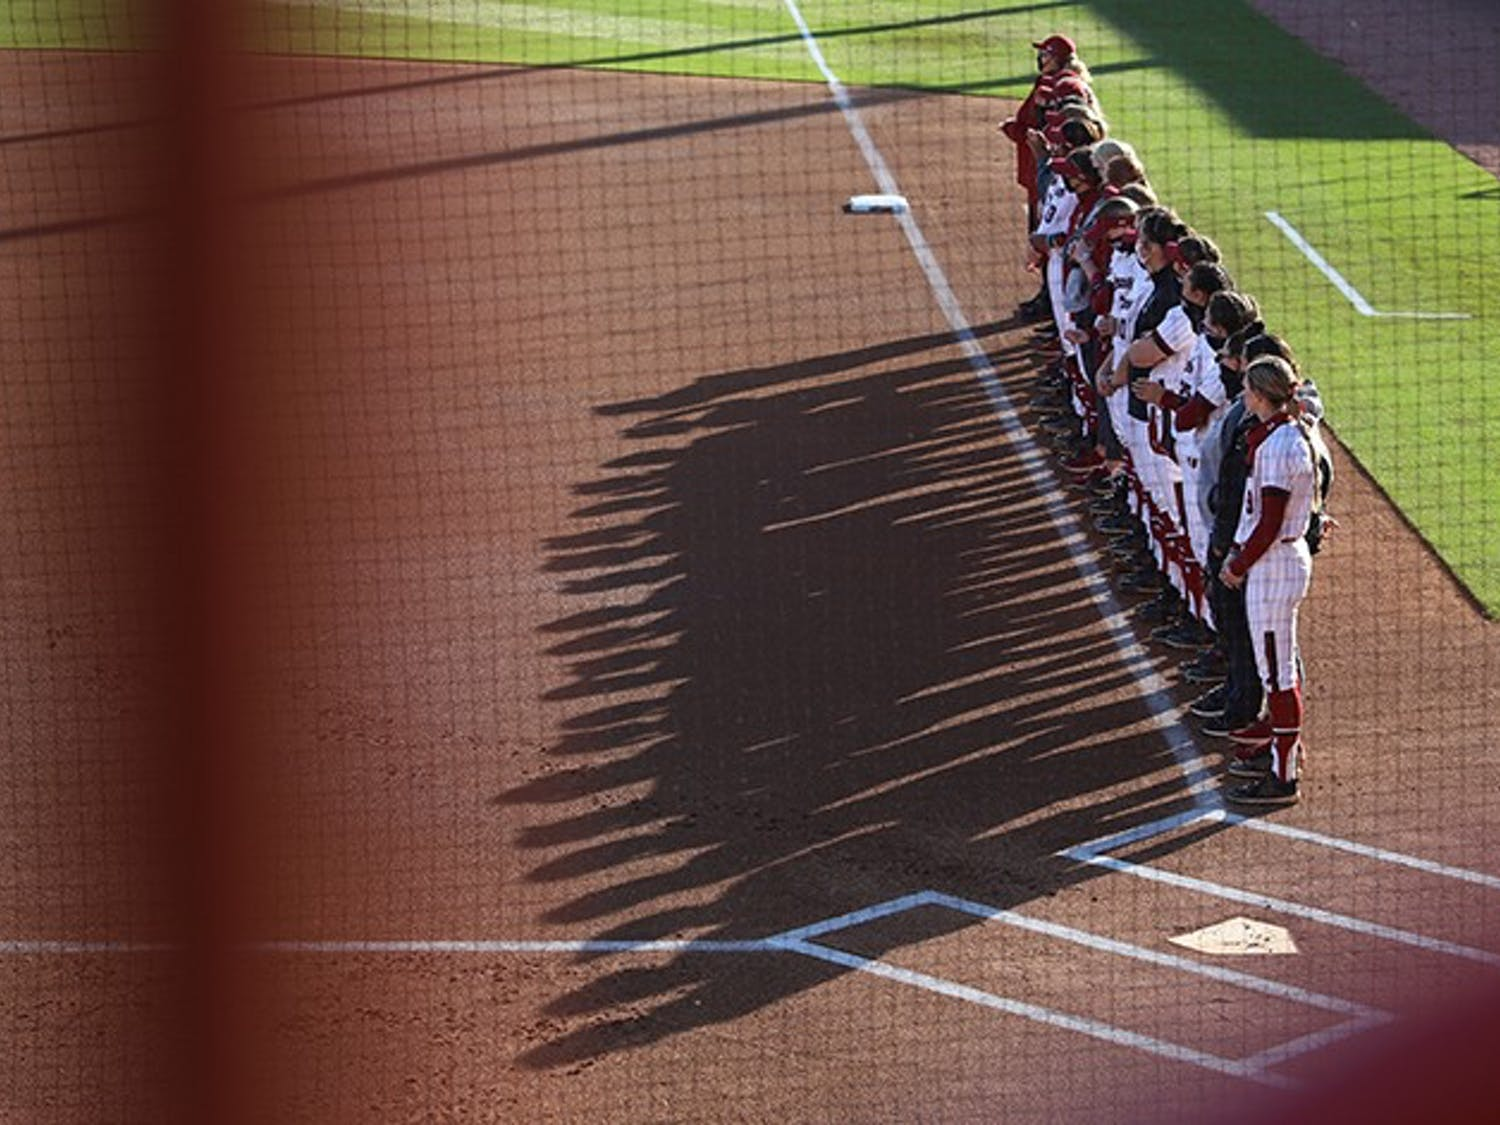 The University of South Carolina softball team stands along the diamond after the national anthem is played.